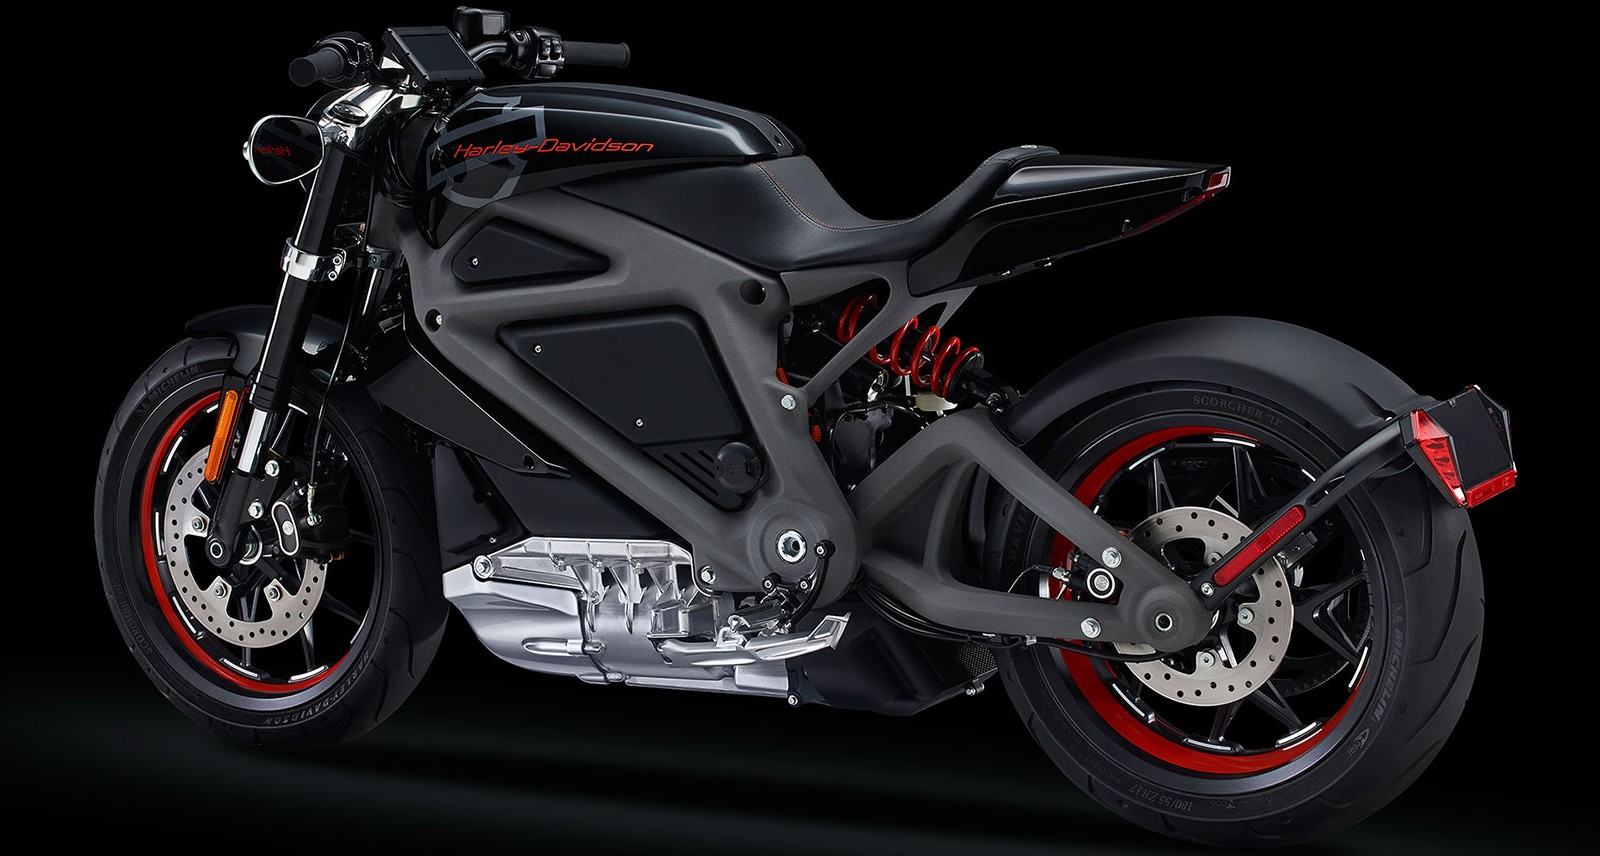 Harley-Davidson Is Producing an All-Electric Motorcycle, and Hell Has Frozen Over